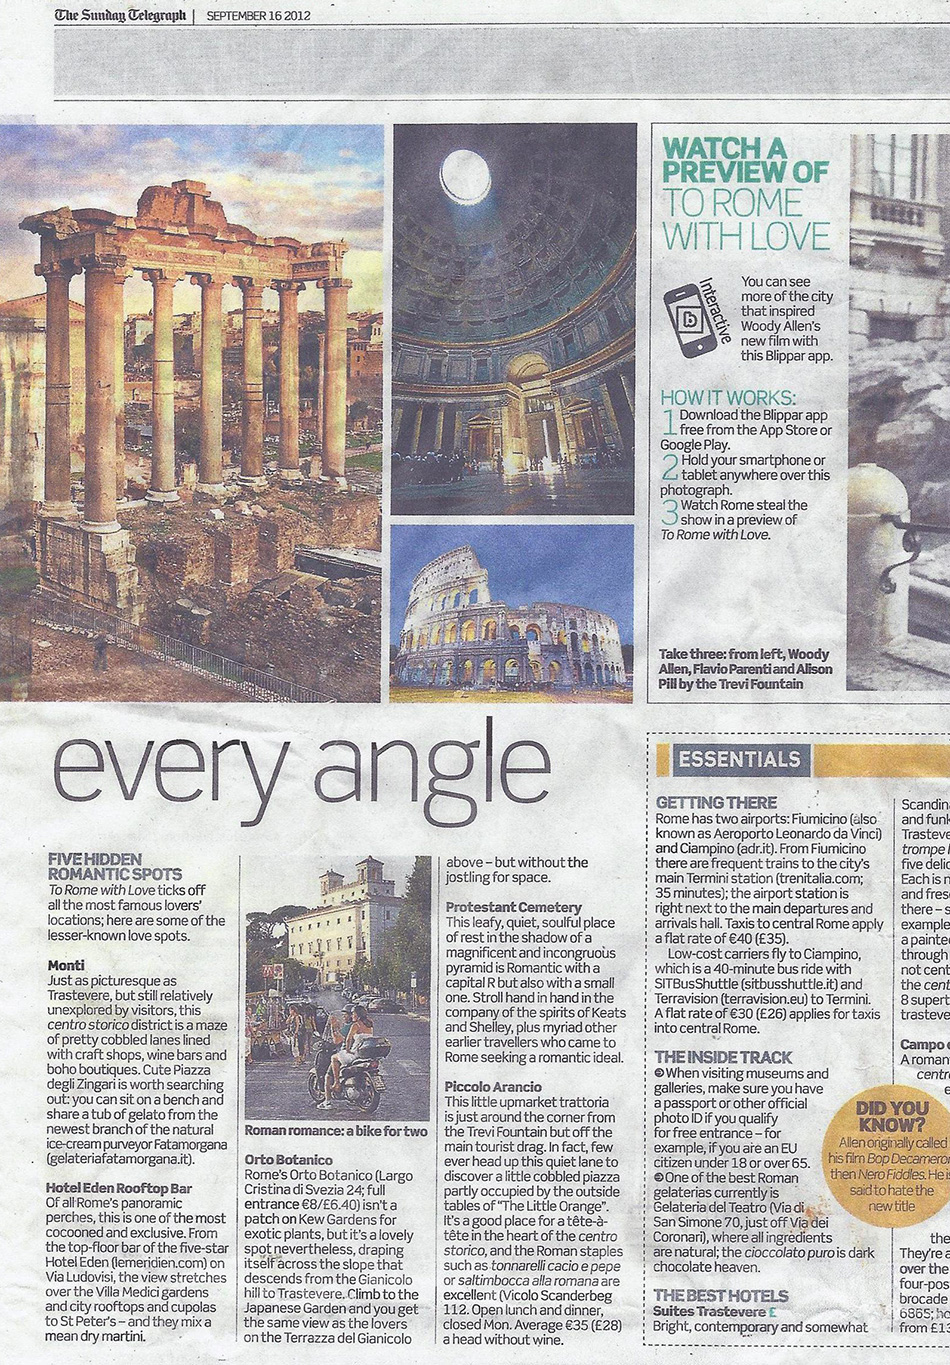 the-sunday-telegraph_2012 (1)